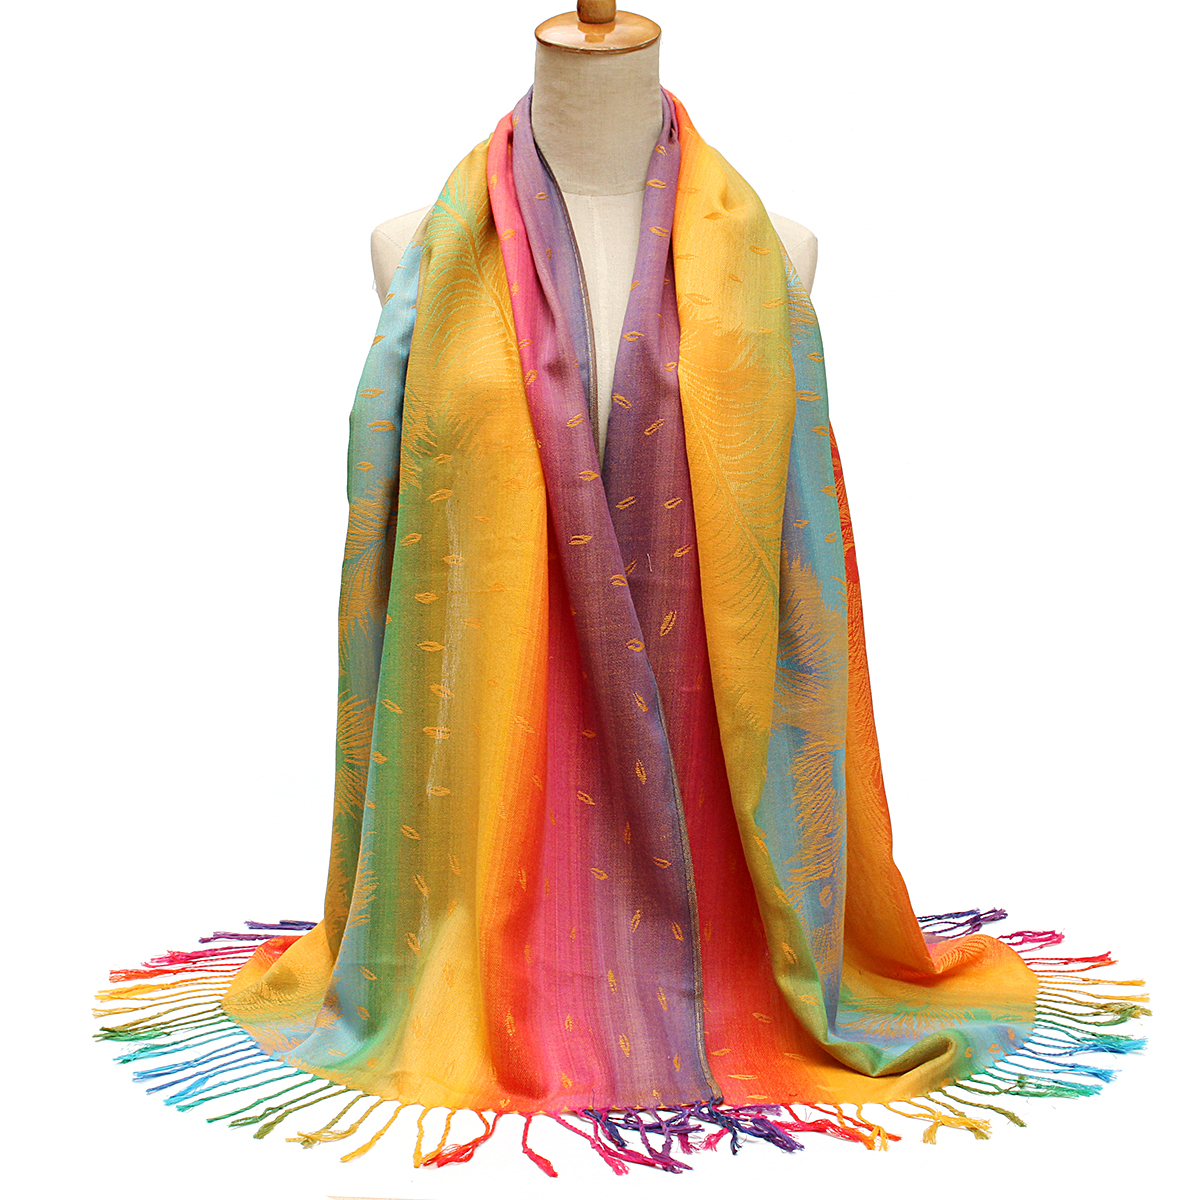 Buy Women Ladies Cotton Mixed Color Feather Printed Tassel Scarves Colorful Stole Shawl Wrap Scarf